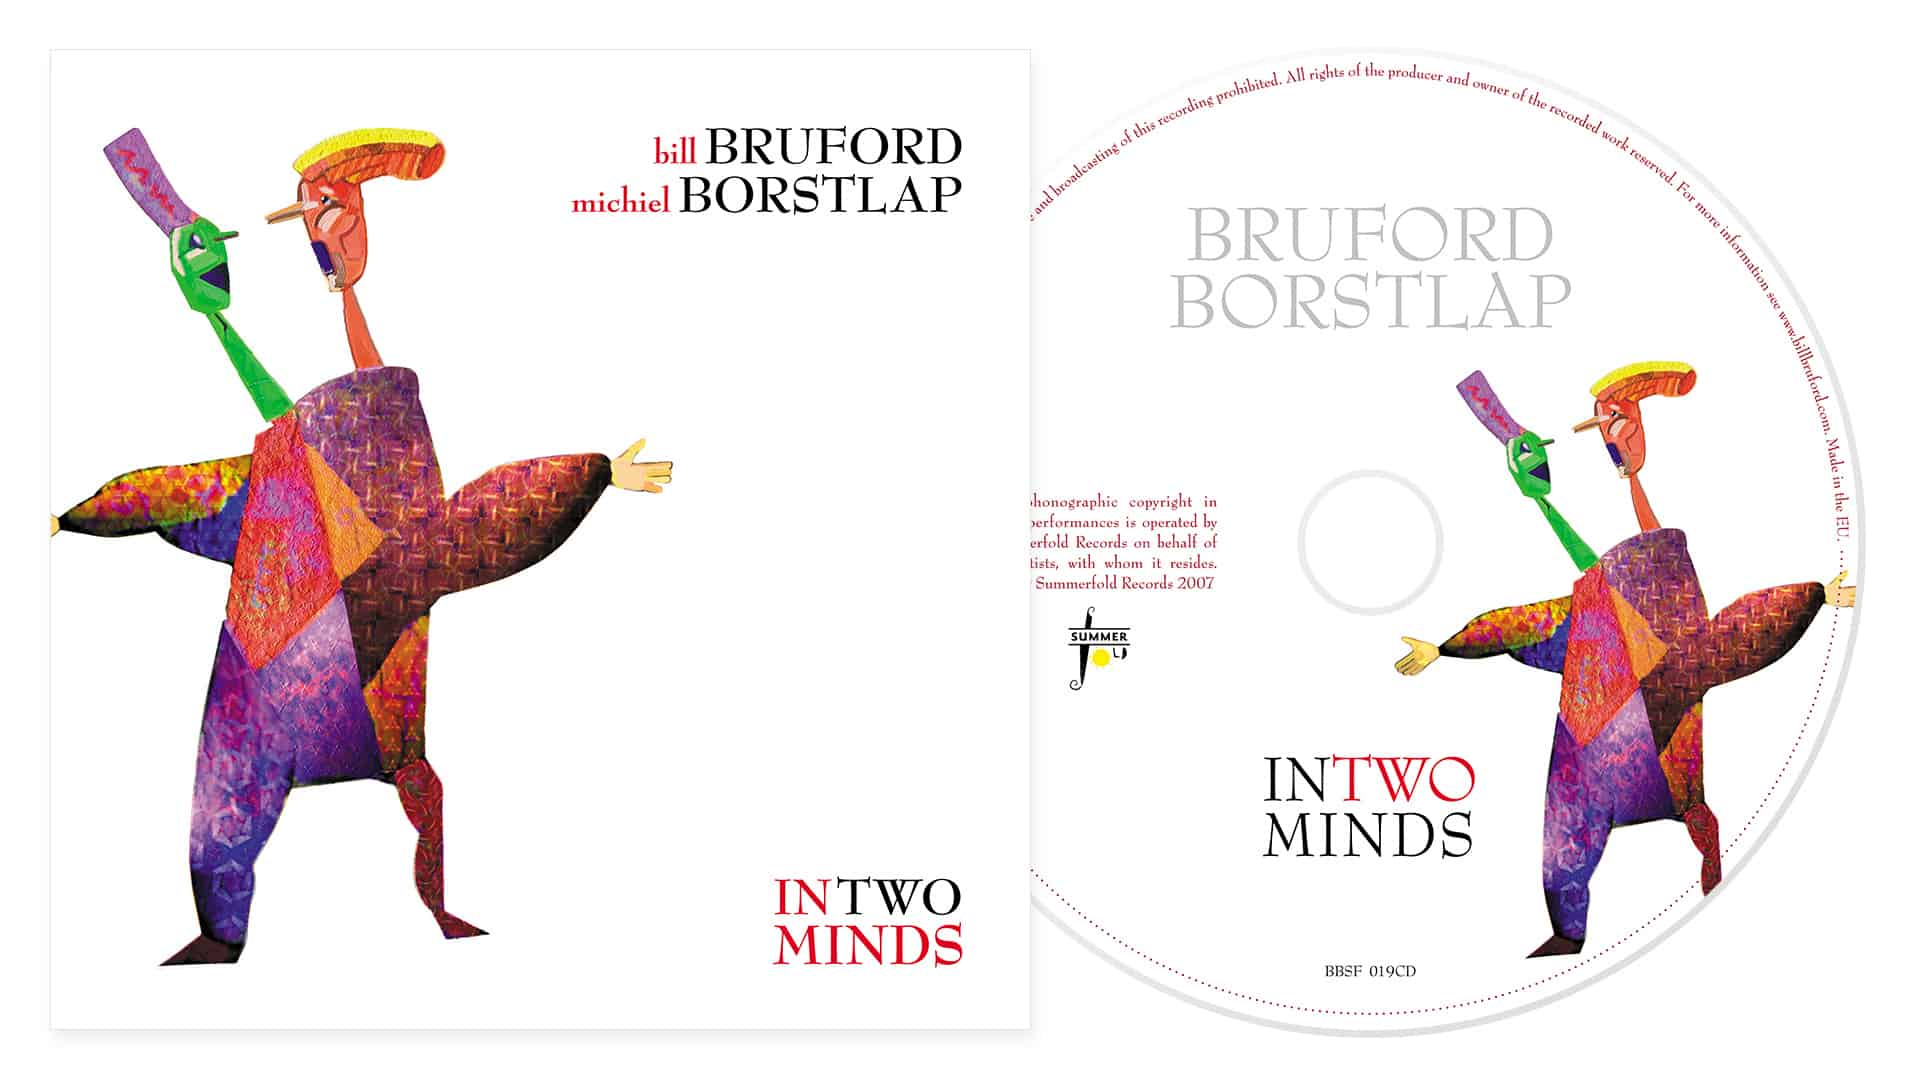 Bill Bruford and Michiel Borstlap album artwork for In Two Minds